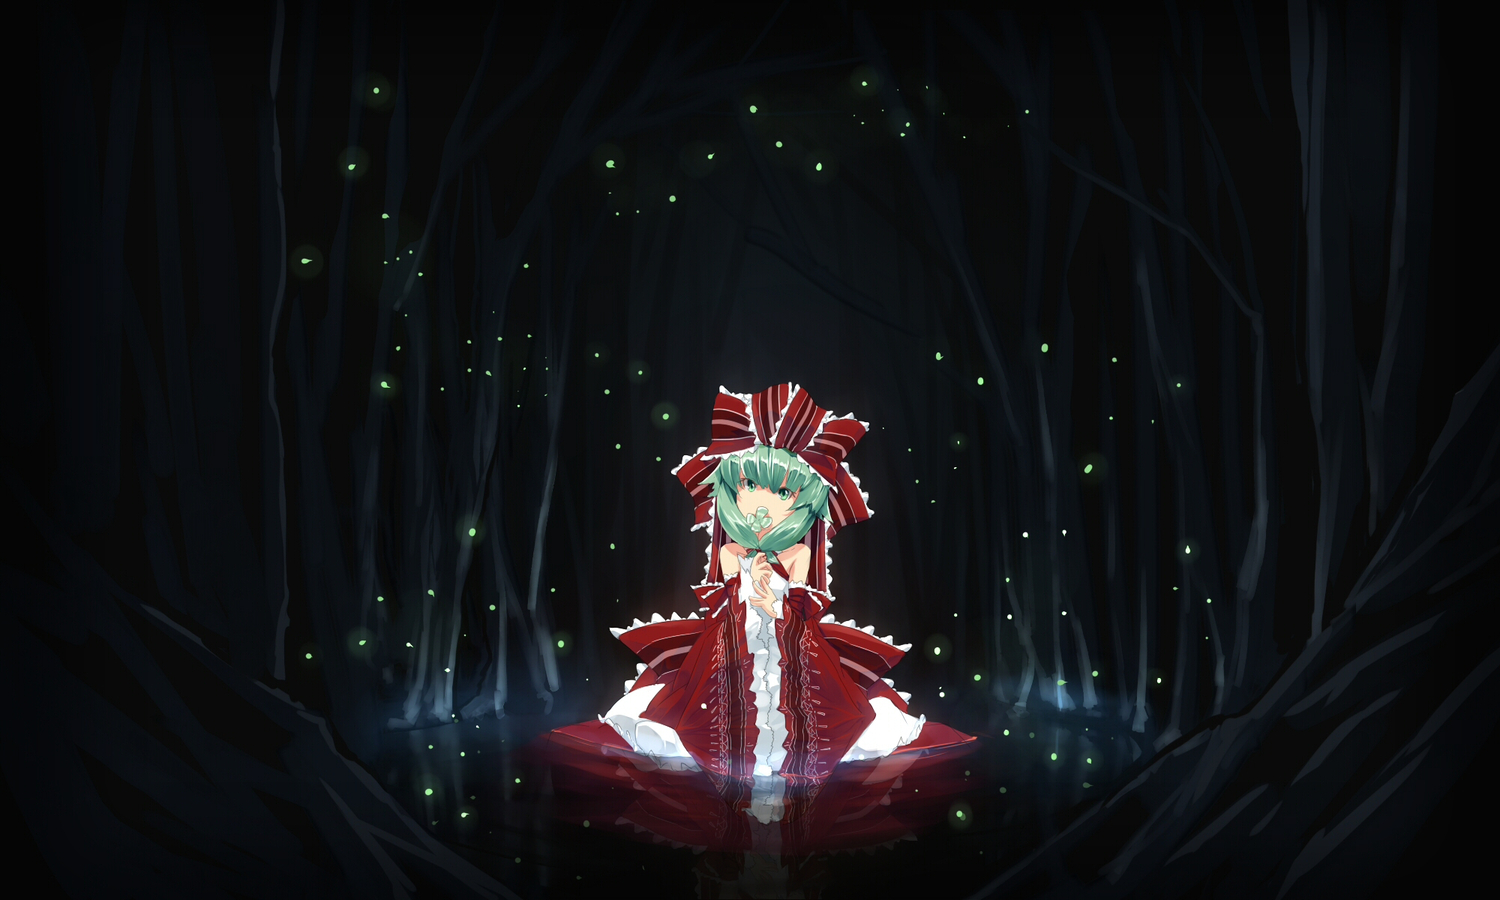 Touhou Project - Страница 3 24cabf916d0965a7662160793eebd10c